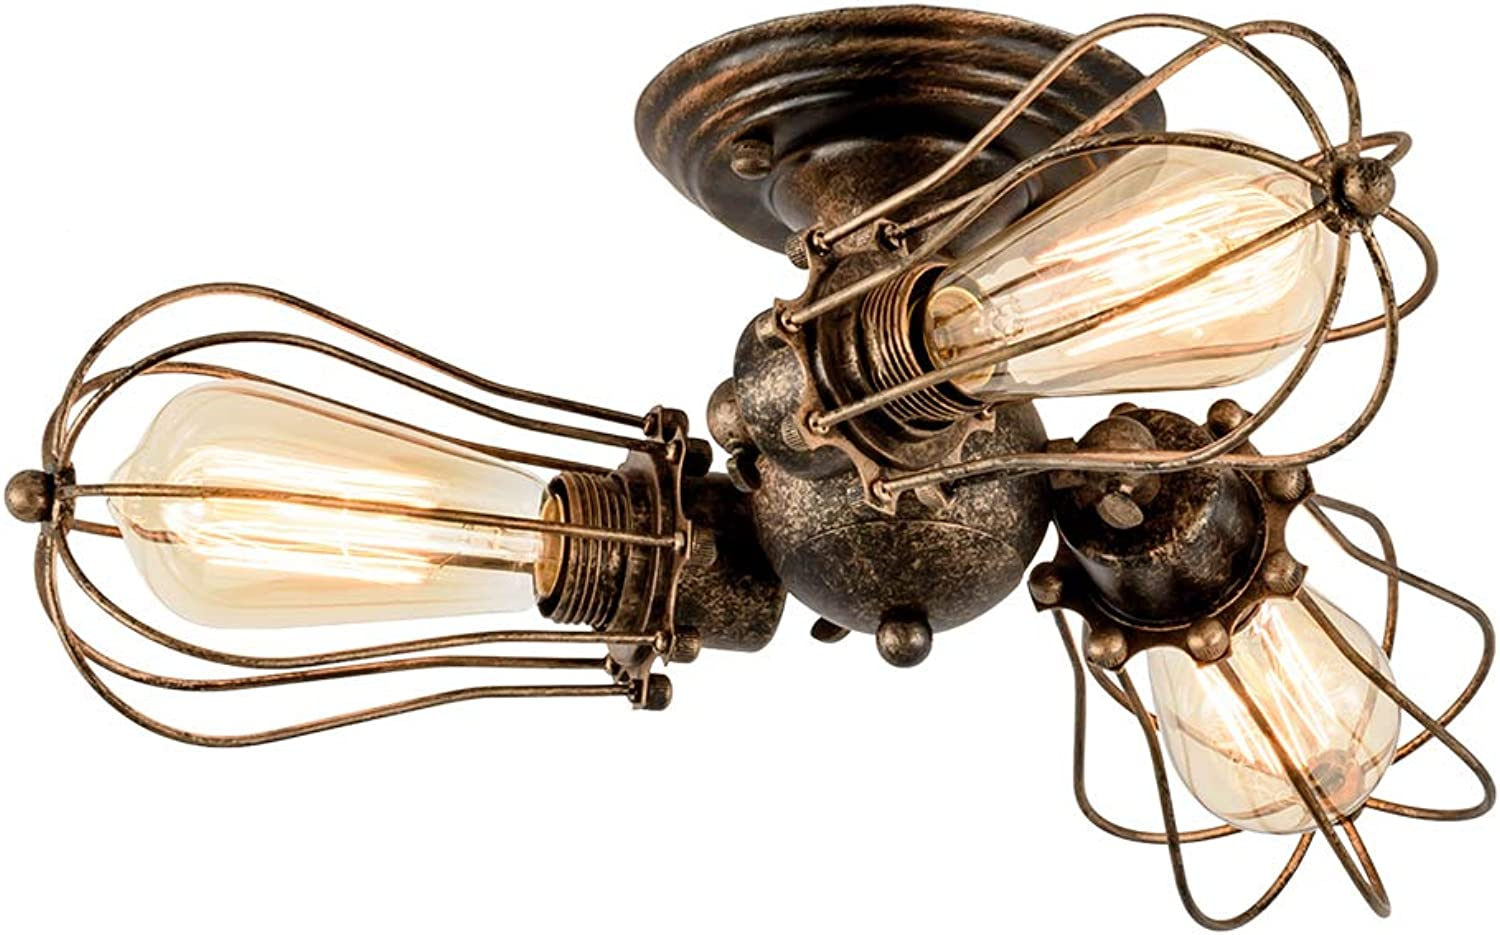 Vintage Ceiling Light Industrial, LULING Adjustable Socket Metal Wire Cage Lamp Semi-Flush Mount Rustic Ceiling Light Metal Lamp Fixtures (No Bulb) (with 3 Light) (Bronze)